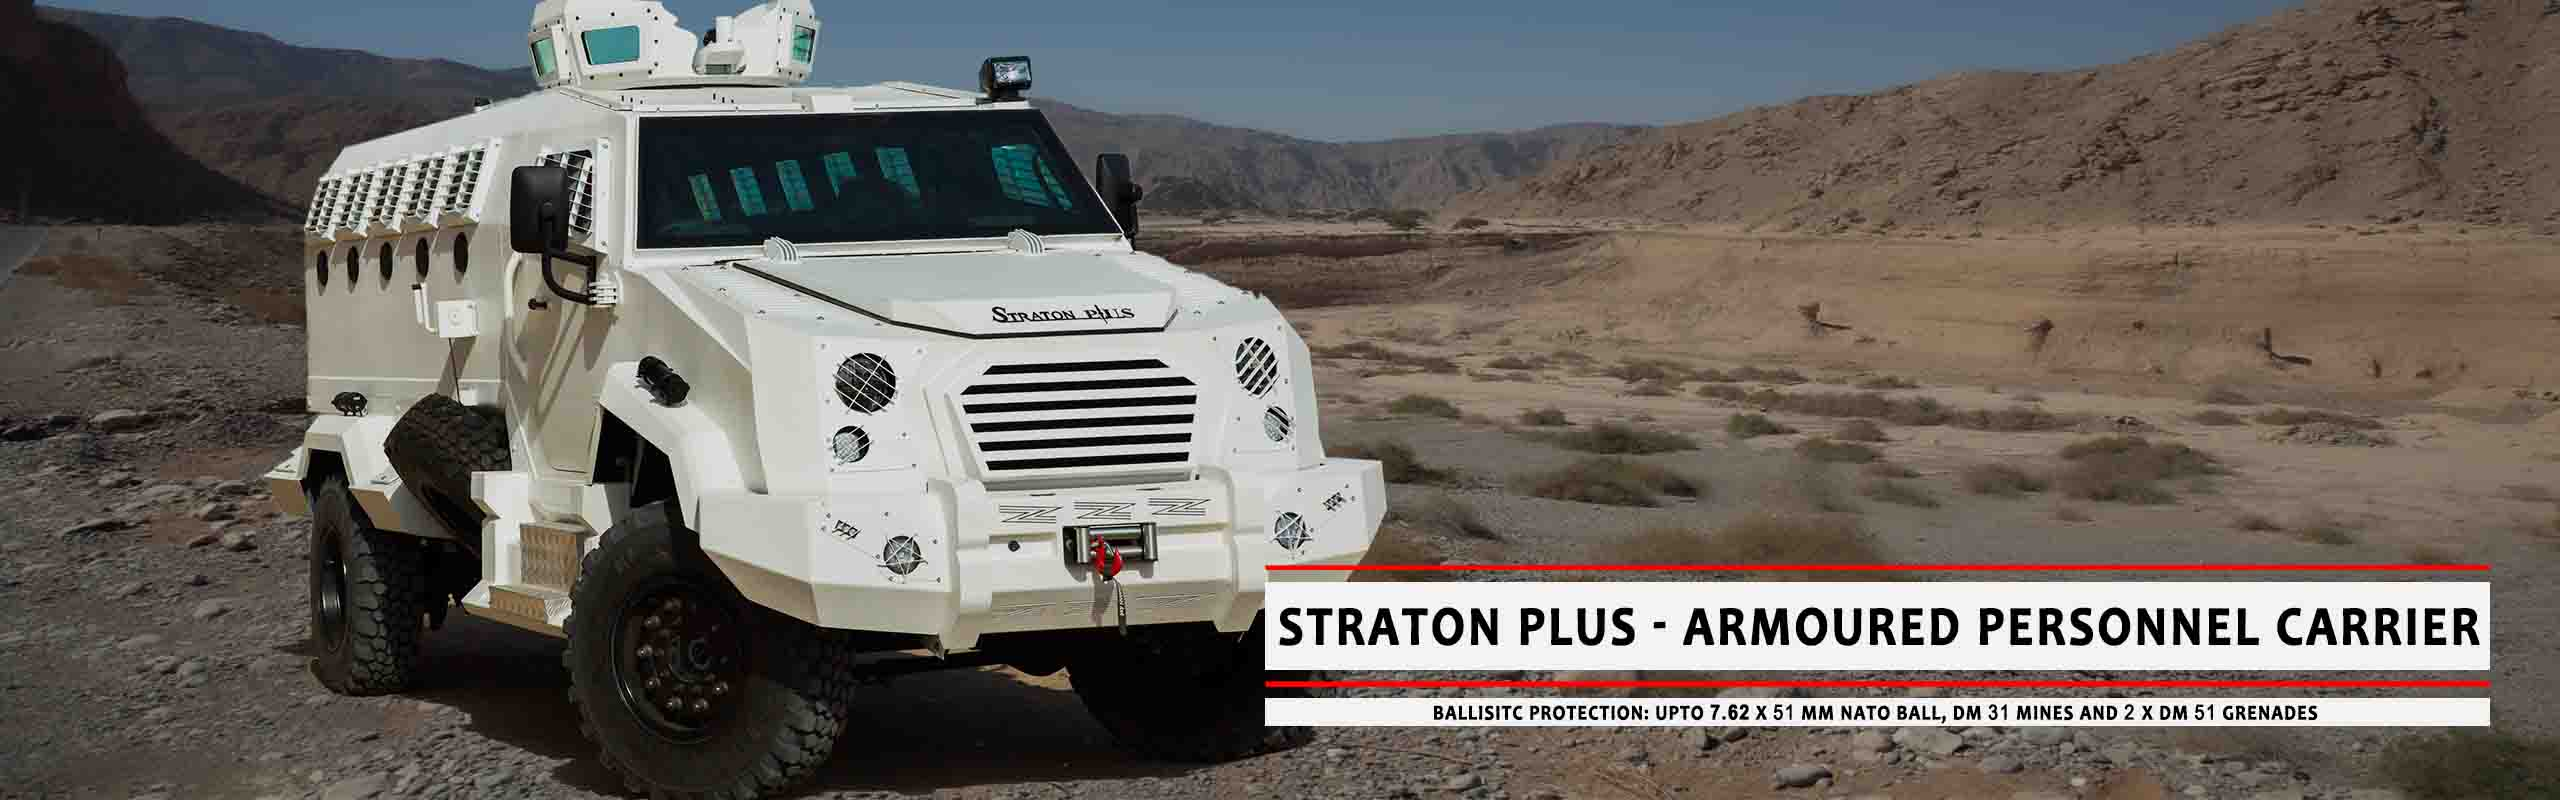 Mahindra Armoured Vehicles UAE - Jordan | Straton Plus Armoured Personal Carrier